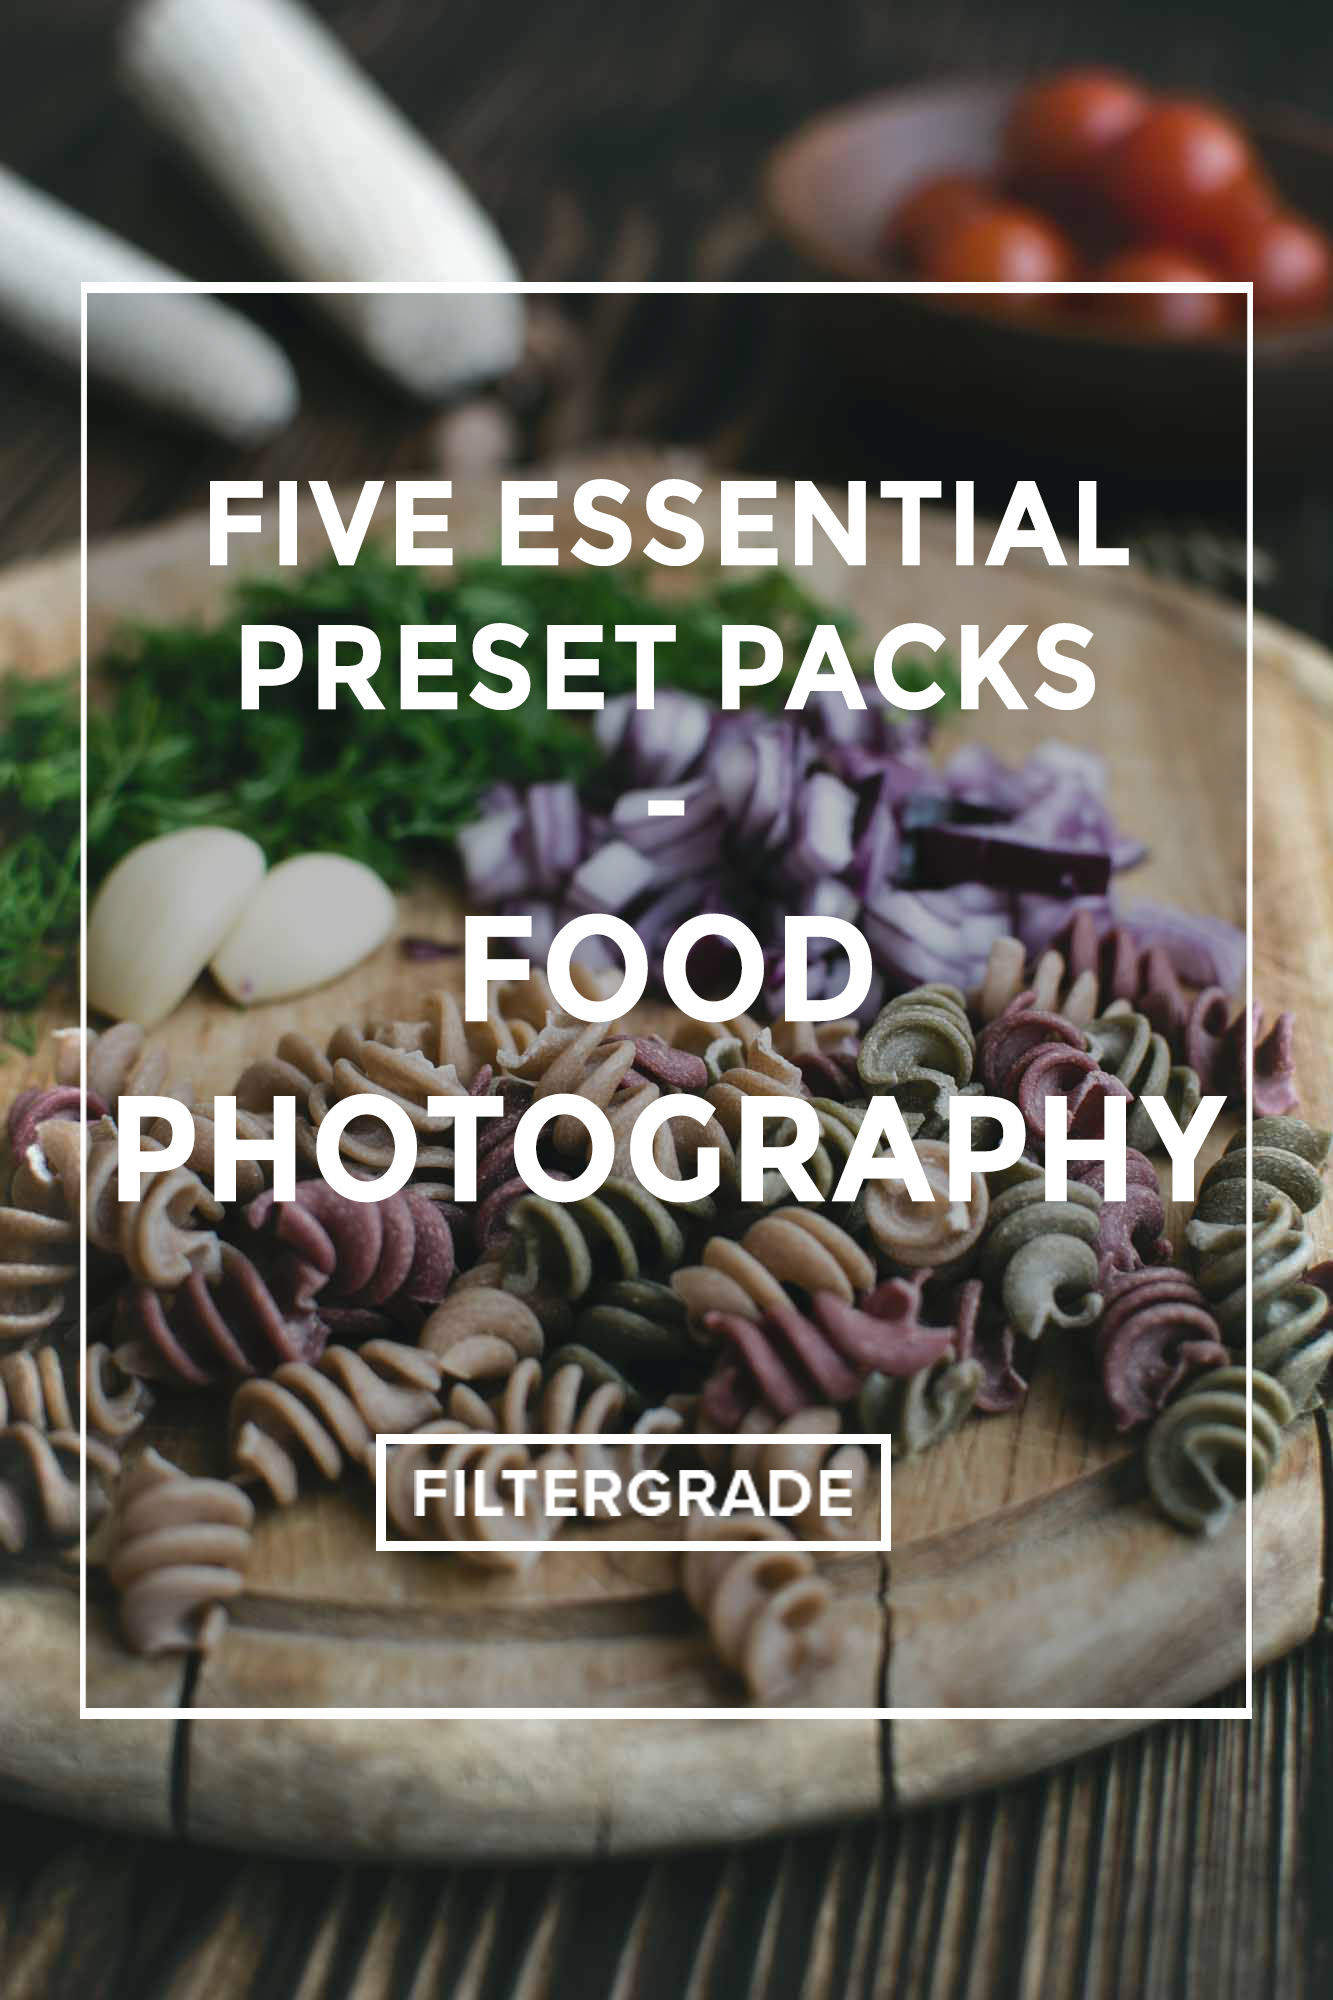 *Five Essential Preset Packs - Food Photography - FilterGrade